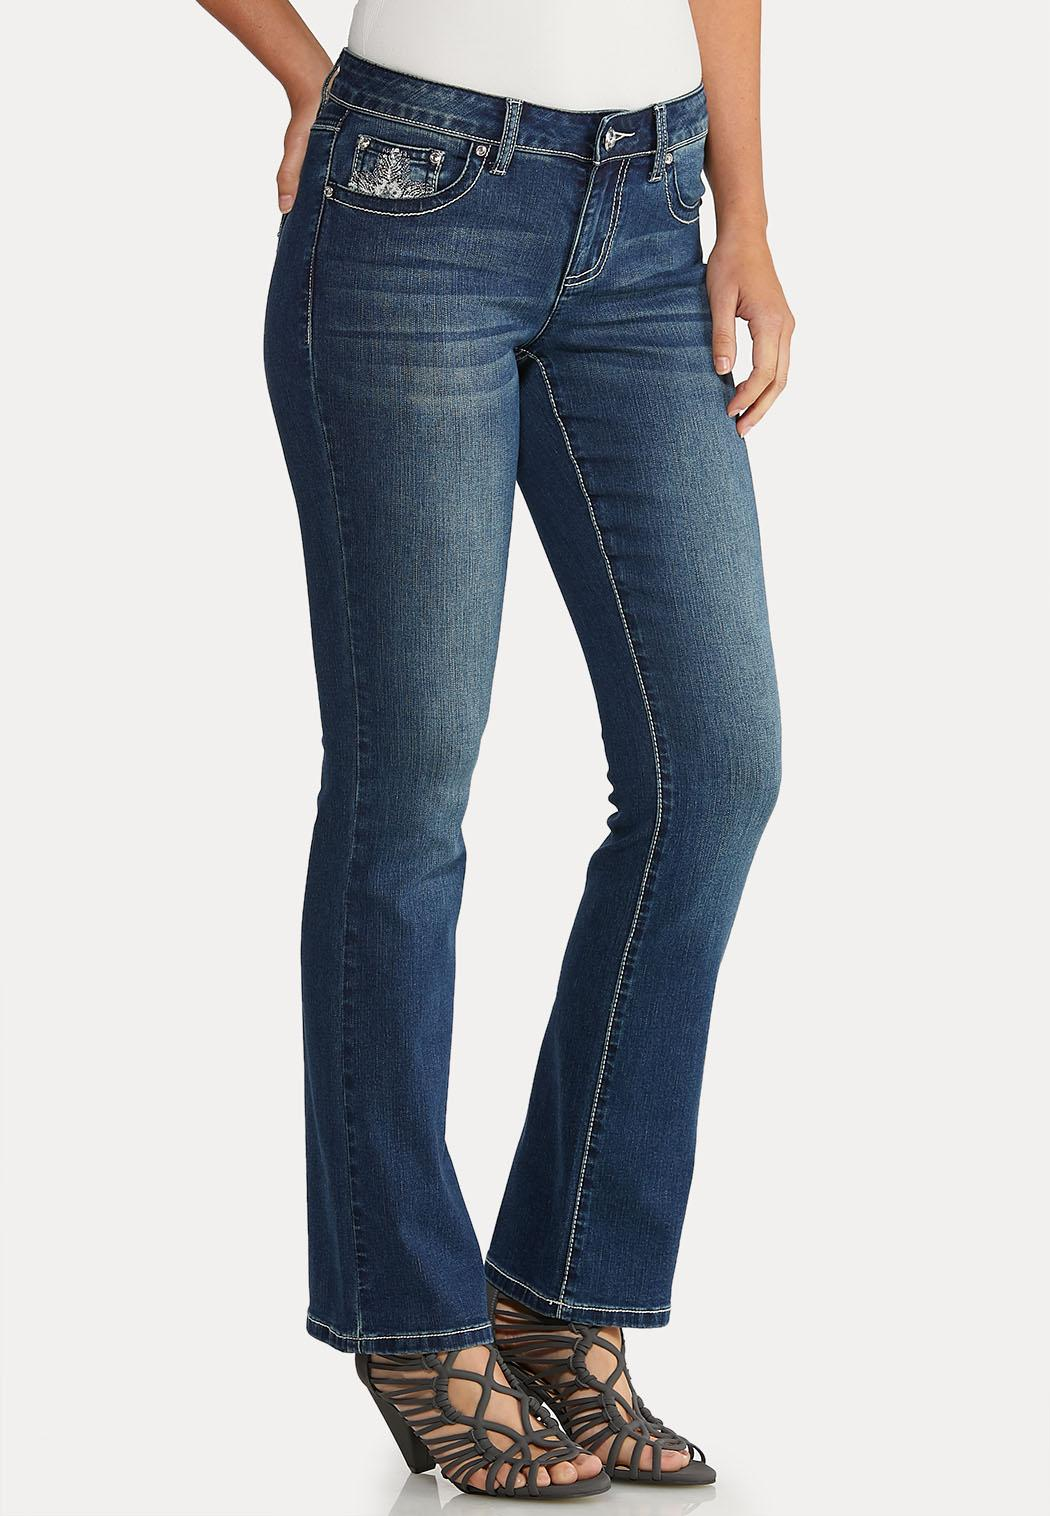 Petite Bootcut Bling Feather Jeans (Item #43942927)